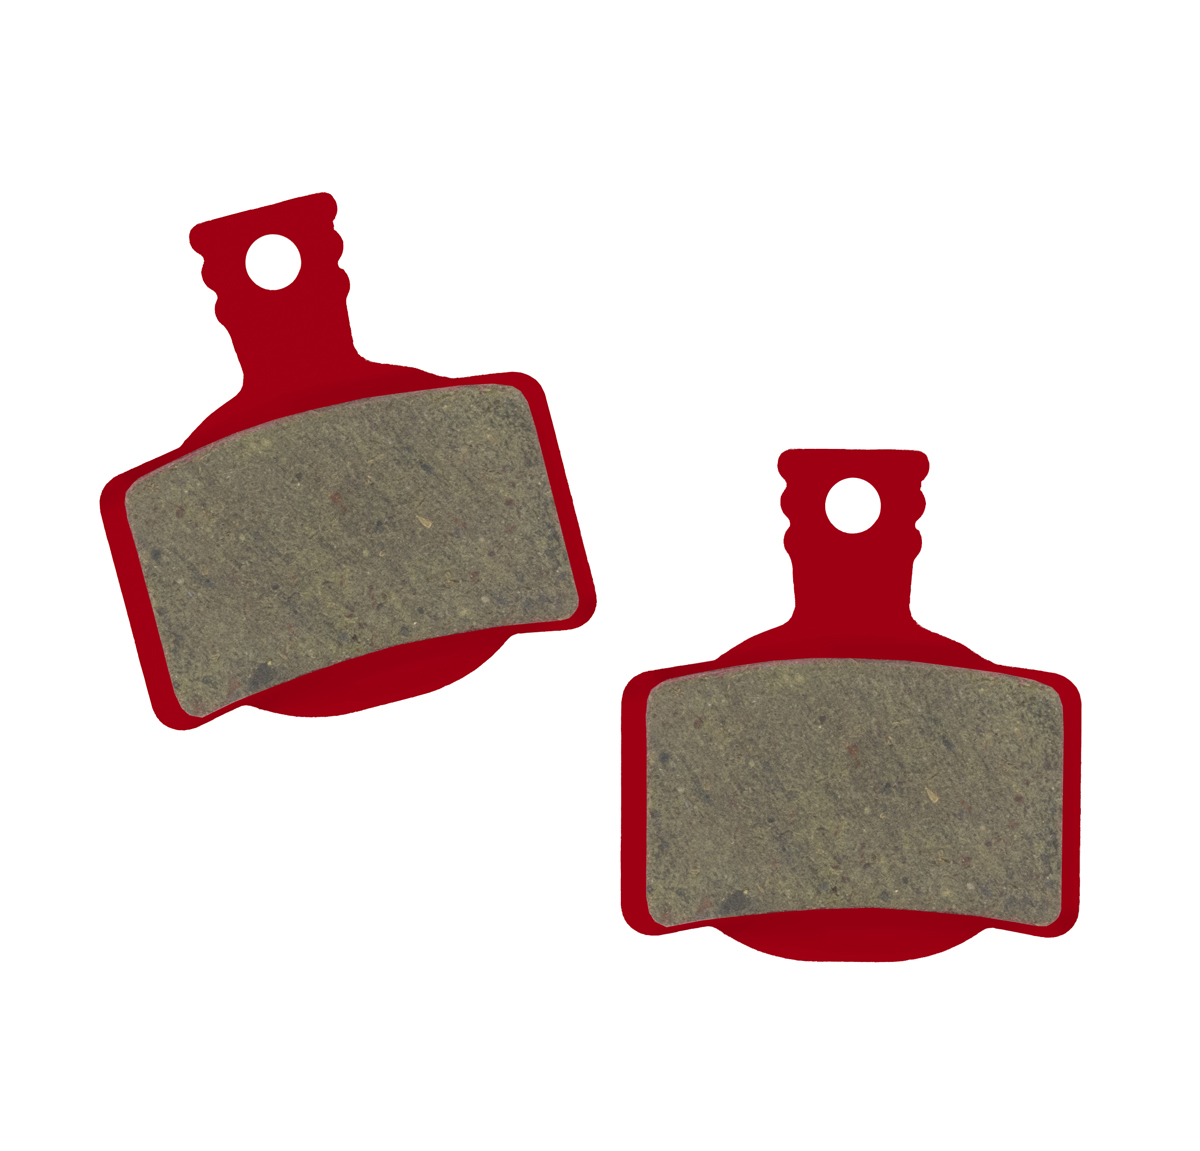 Trivio Organic Brake Pad for Magura MT 2/4/6/8 MTB Disc